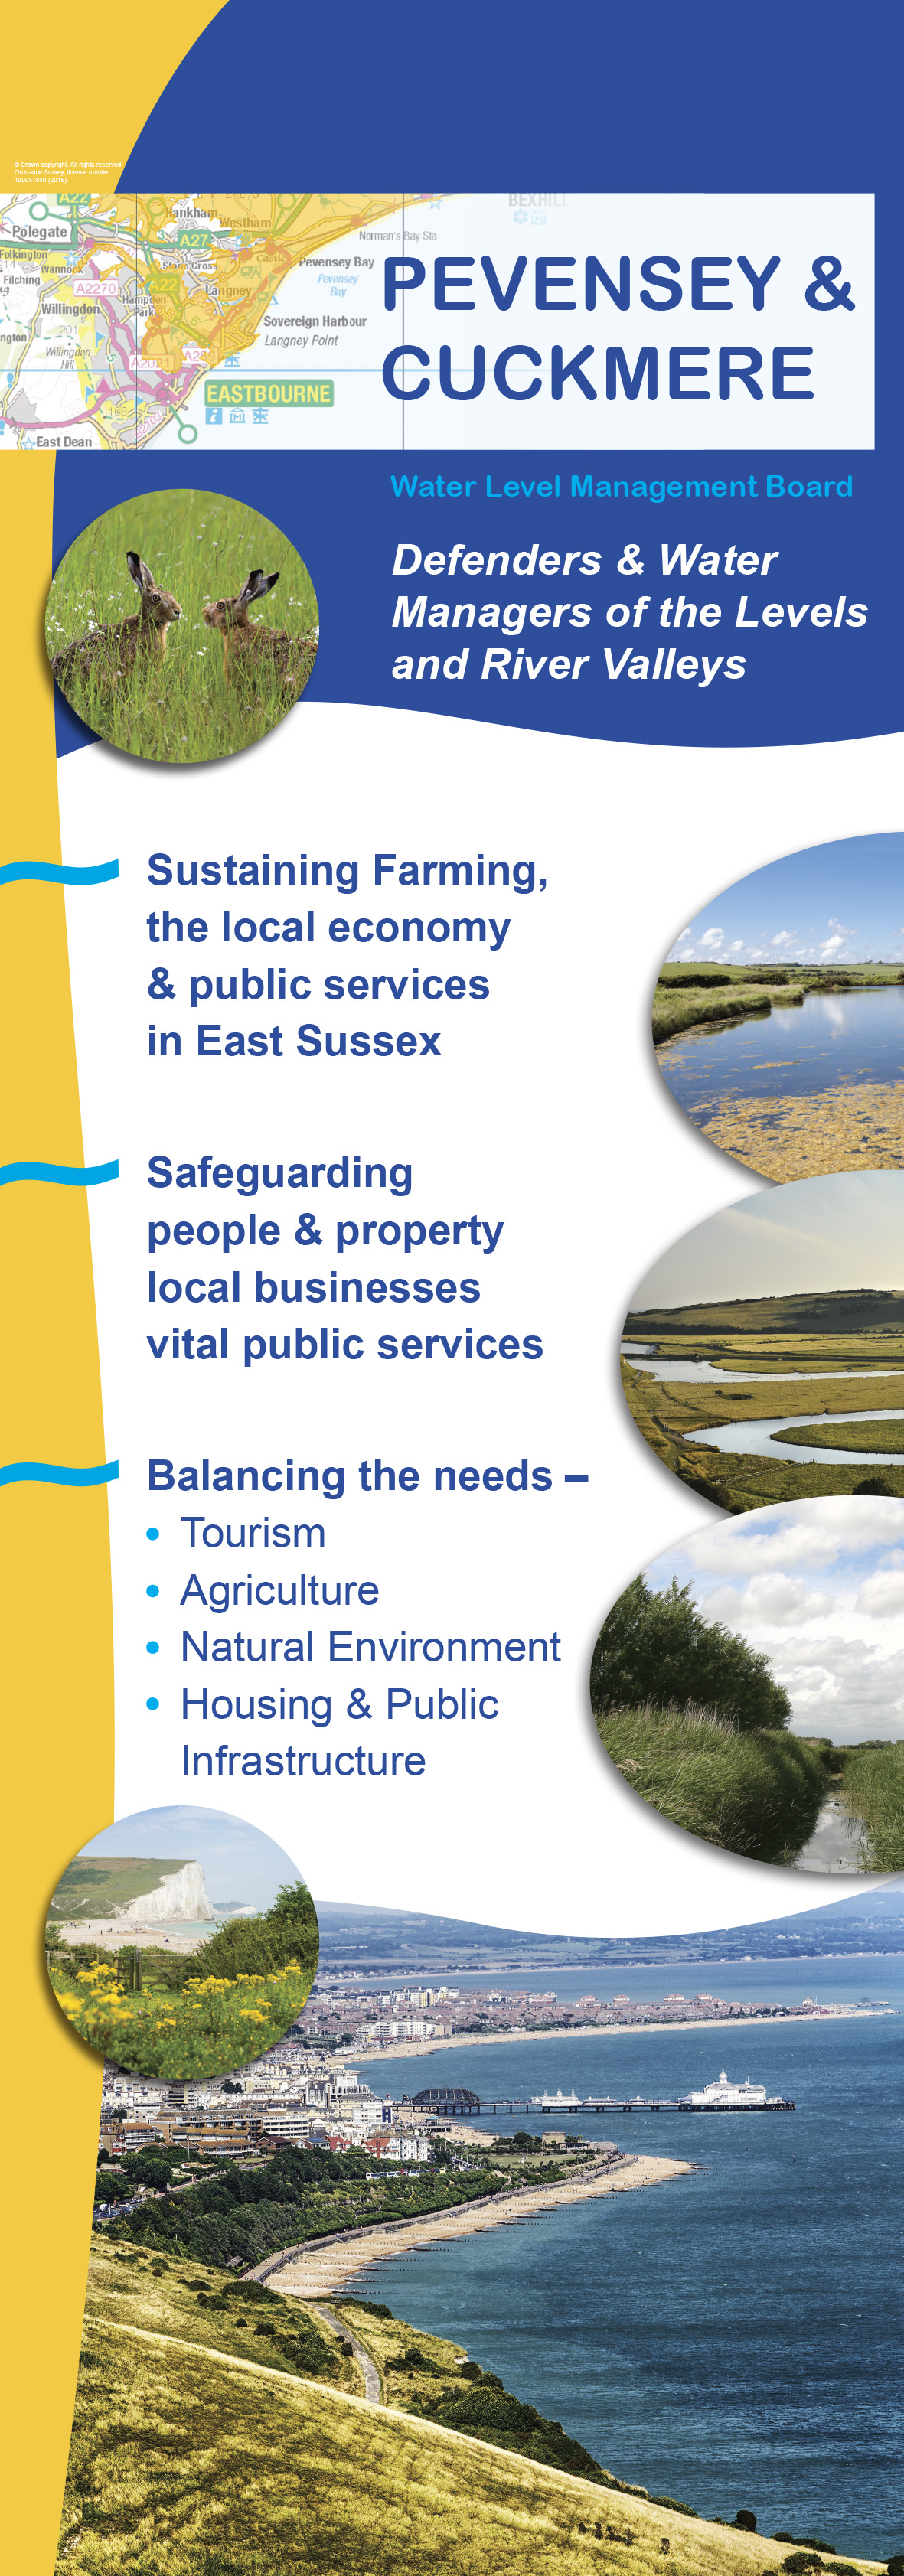 Pevensey and Cuckmere Water Level Management Board Information Banner. Defenders and Water Managers of the Levels and River Valleys. Sustaining Farming, the local economy and public services in East Sussex. Safeguarding people and property local businesses vital to public services. Balancing the needs; Tourism, Agriculture, Natural Environment, Housing and Public Infrastructure.